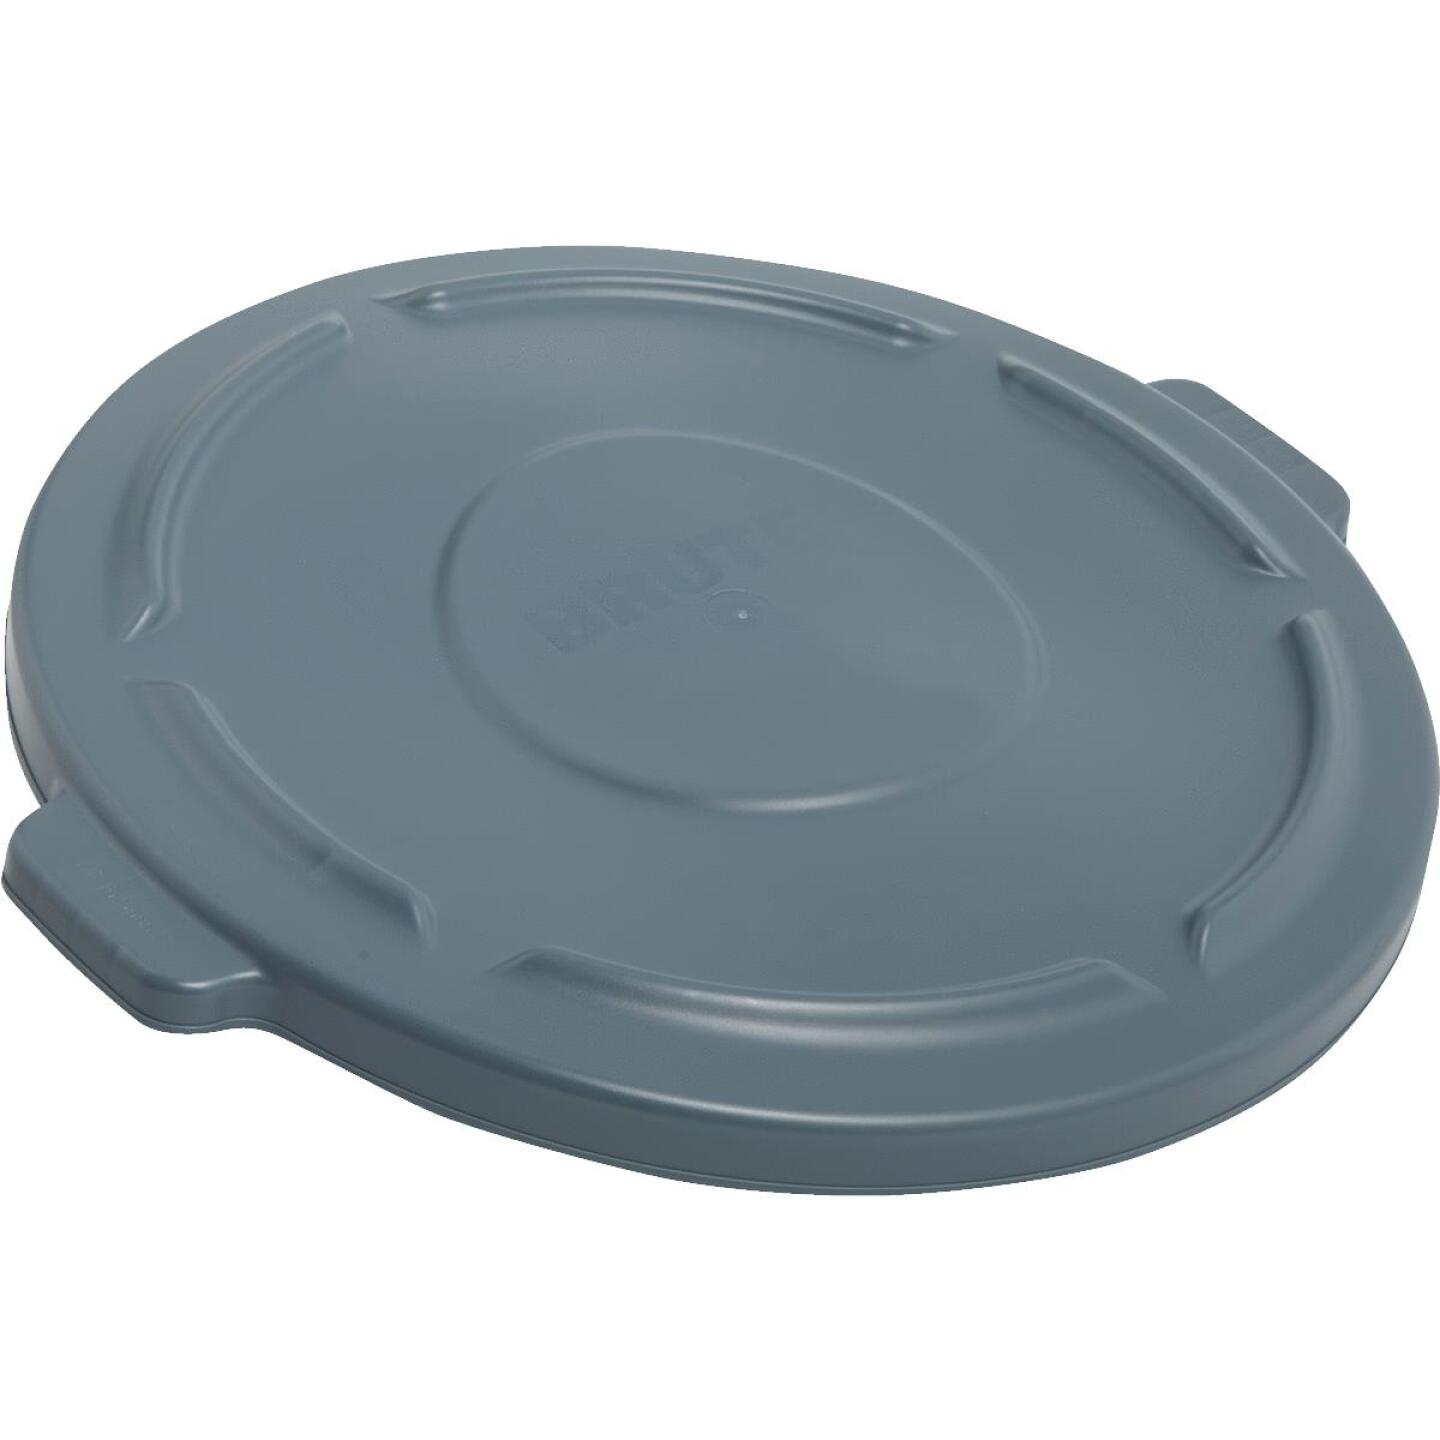 Rubbermaid Commercial Brute Gray Trash Can Lid for 44 Gal. Trash Can Image 1